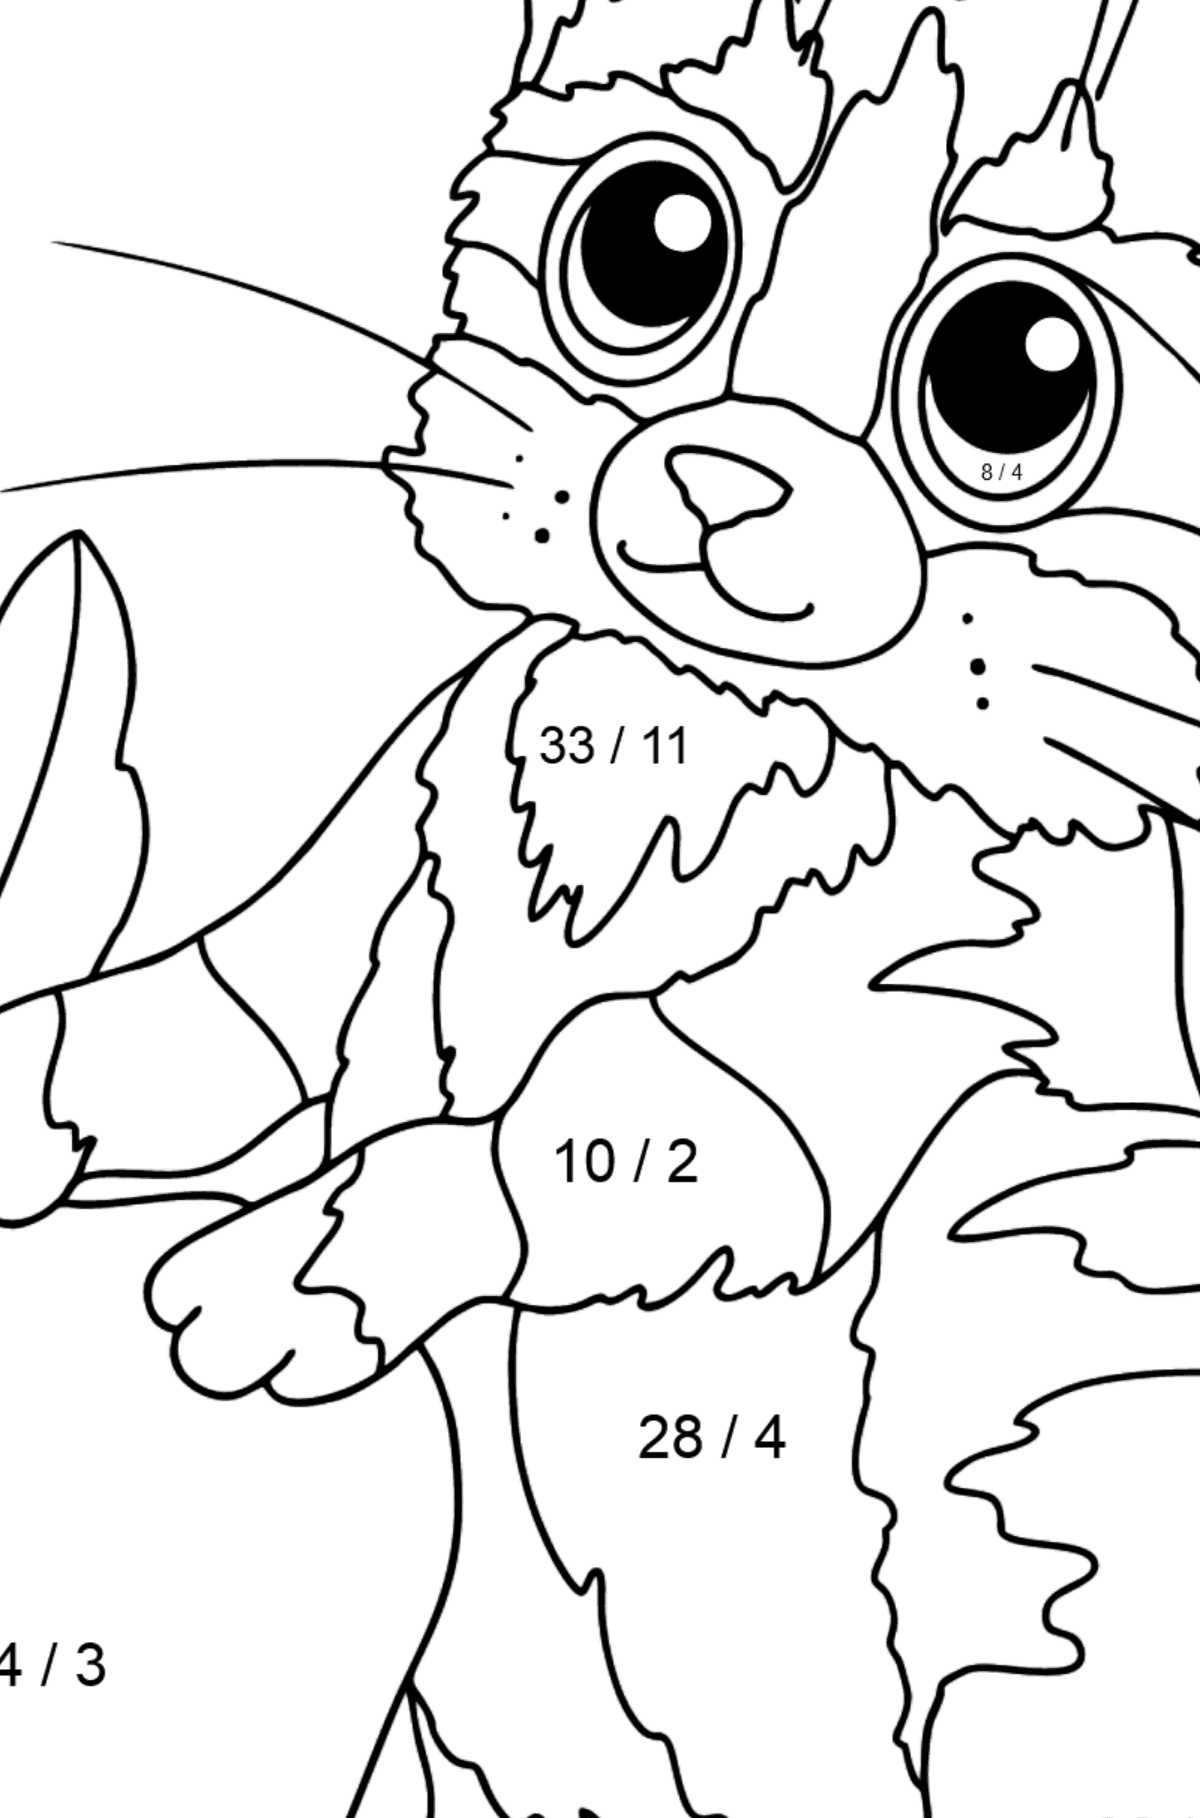 A Kitten is Playing with an Apple - Stampy cat coloring page - Math Coloring - Division for Kids